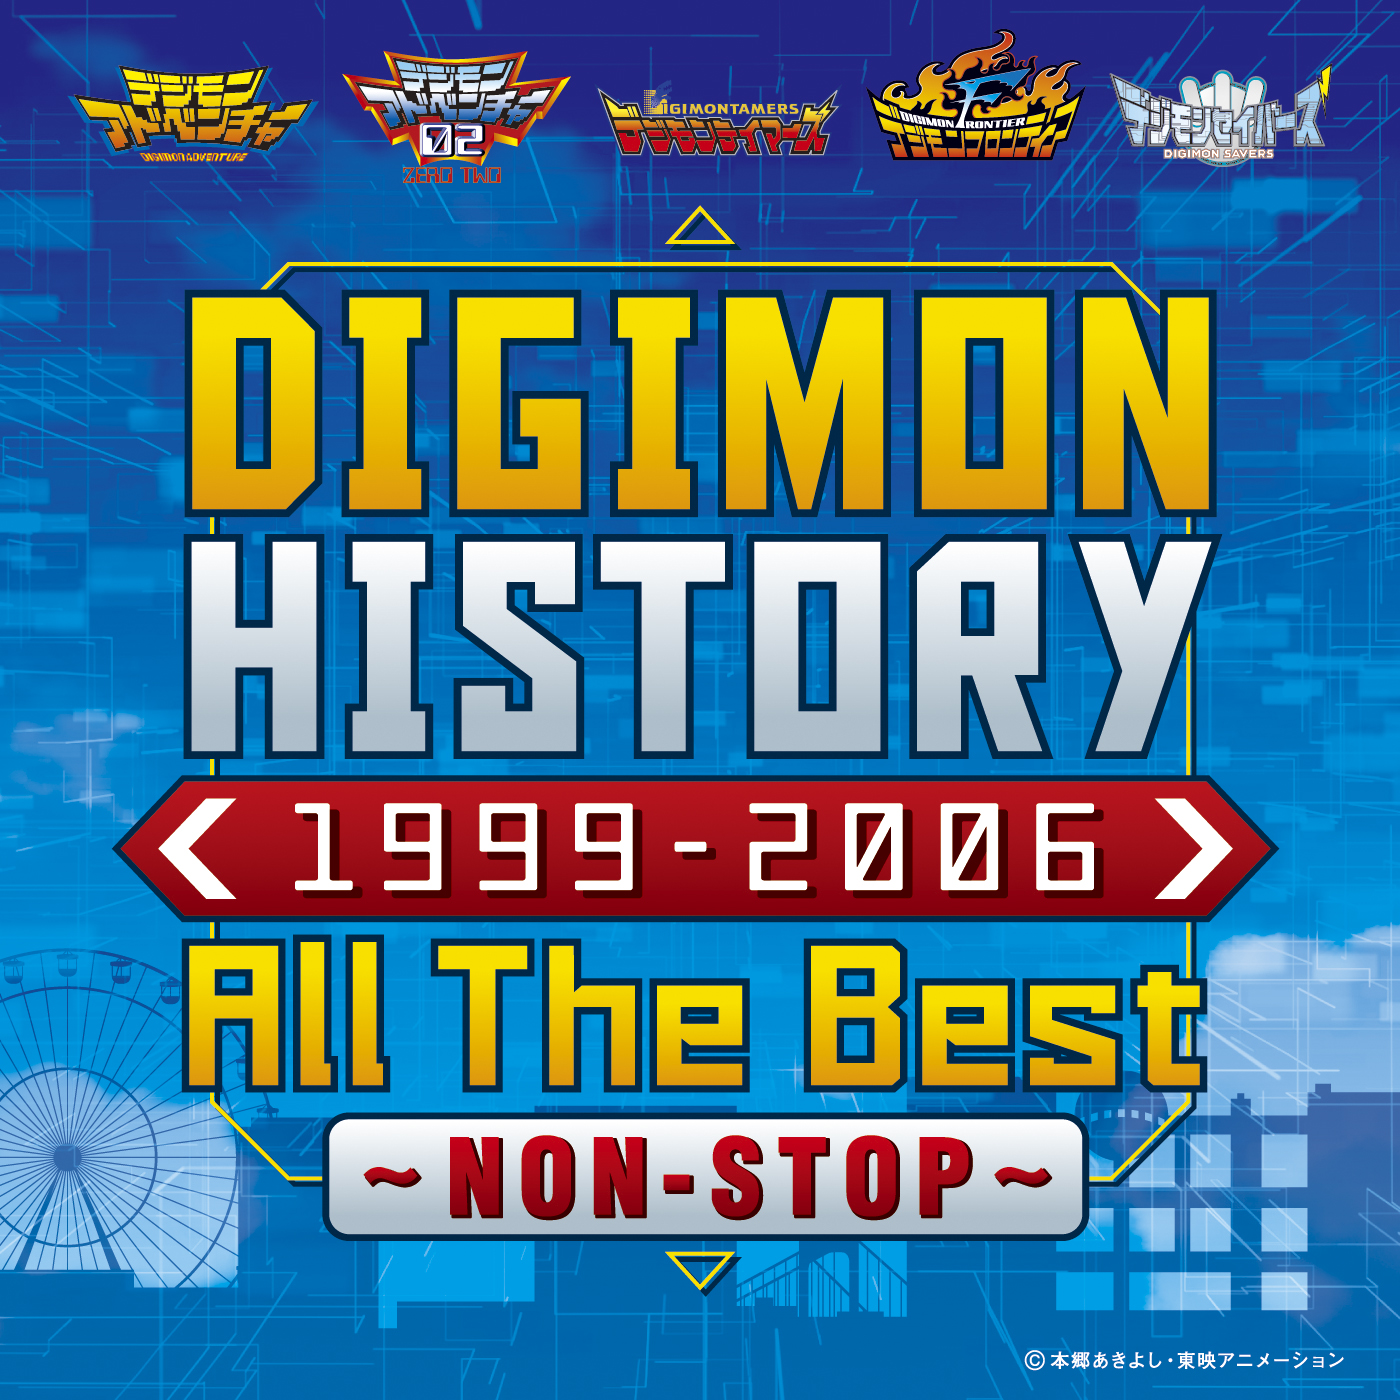 DIGIMON HISTORY 1999-2006 All The Best~NON-STOP~〔デジタルアルバム〕